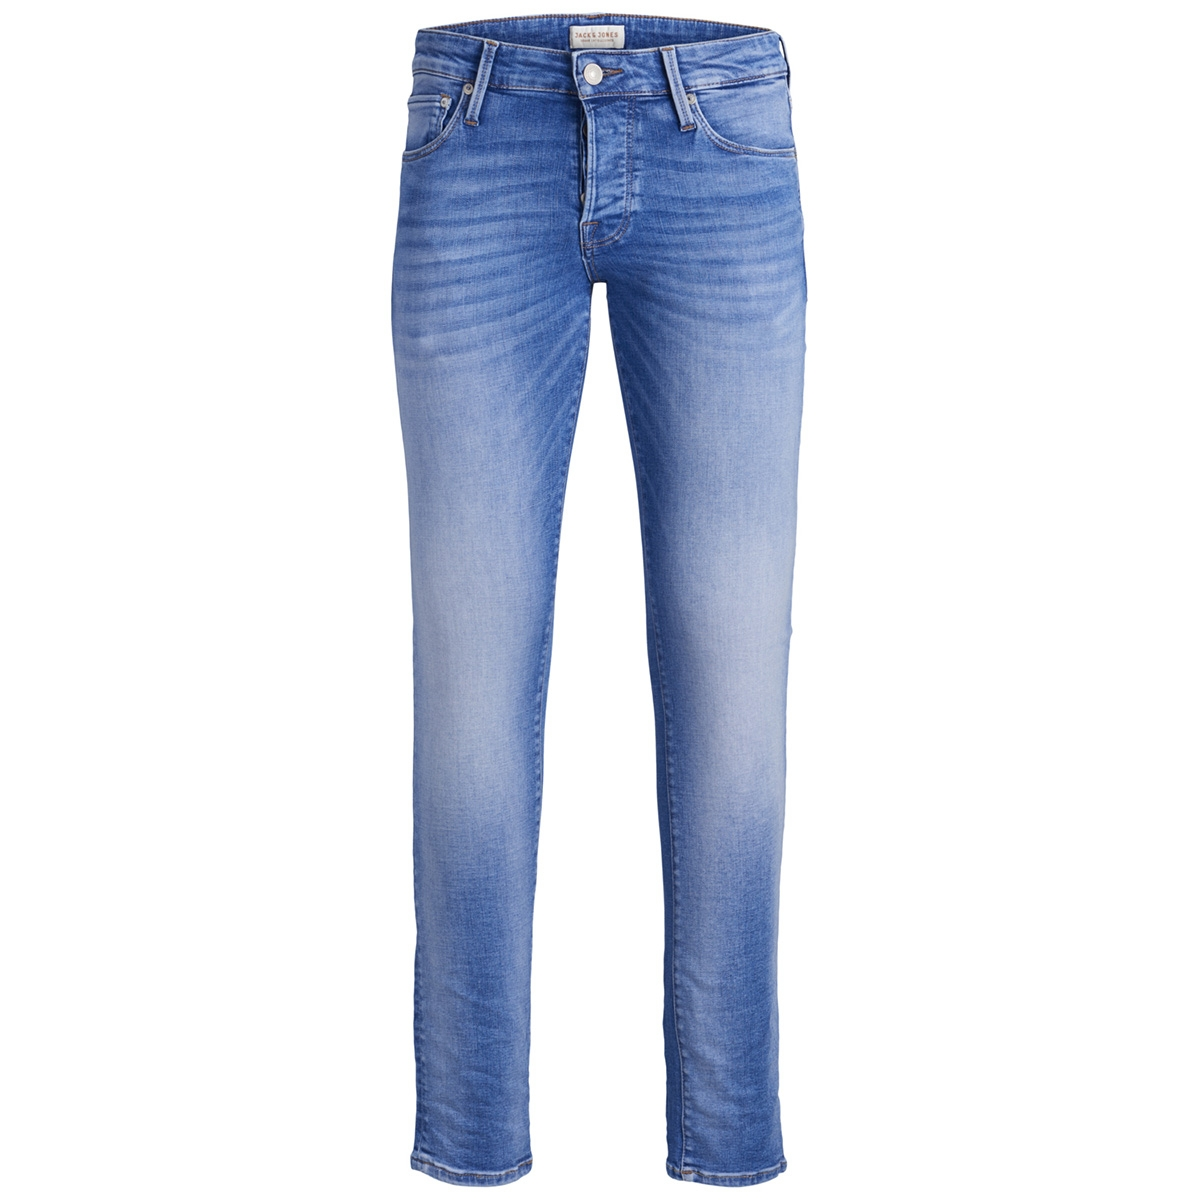 jjiglenn jjicon jj 457 50sps sts 12152588 jack & jones jeans blue denim